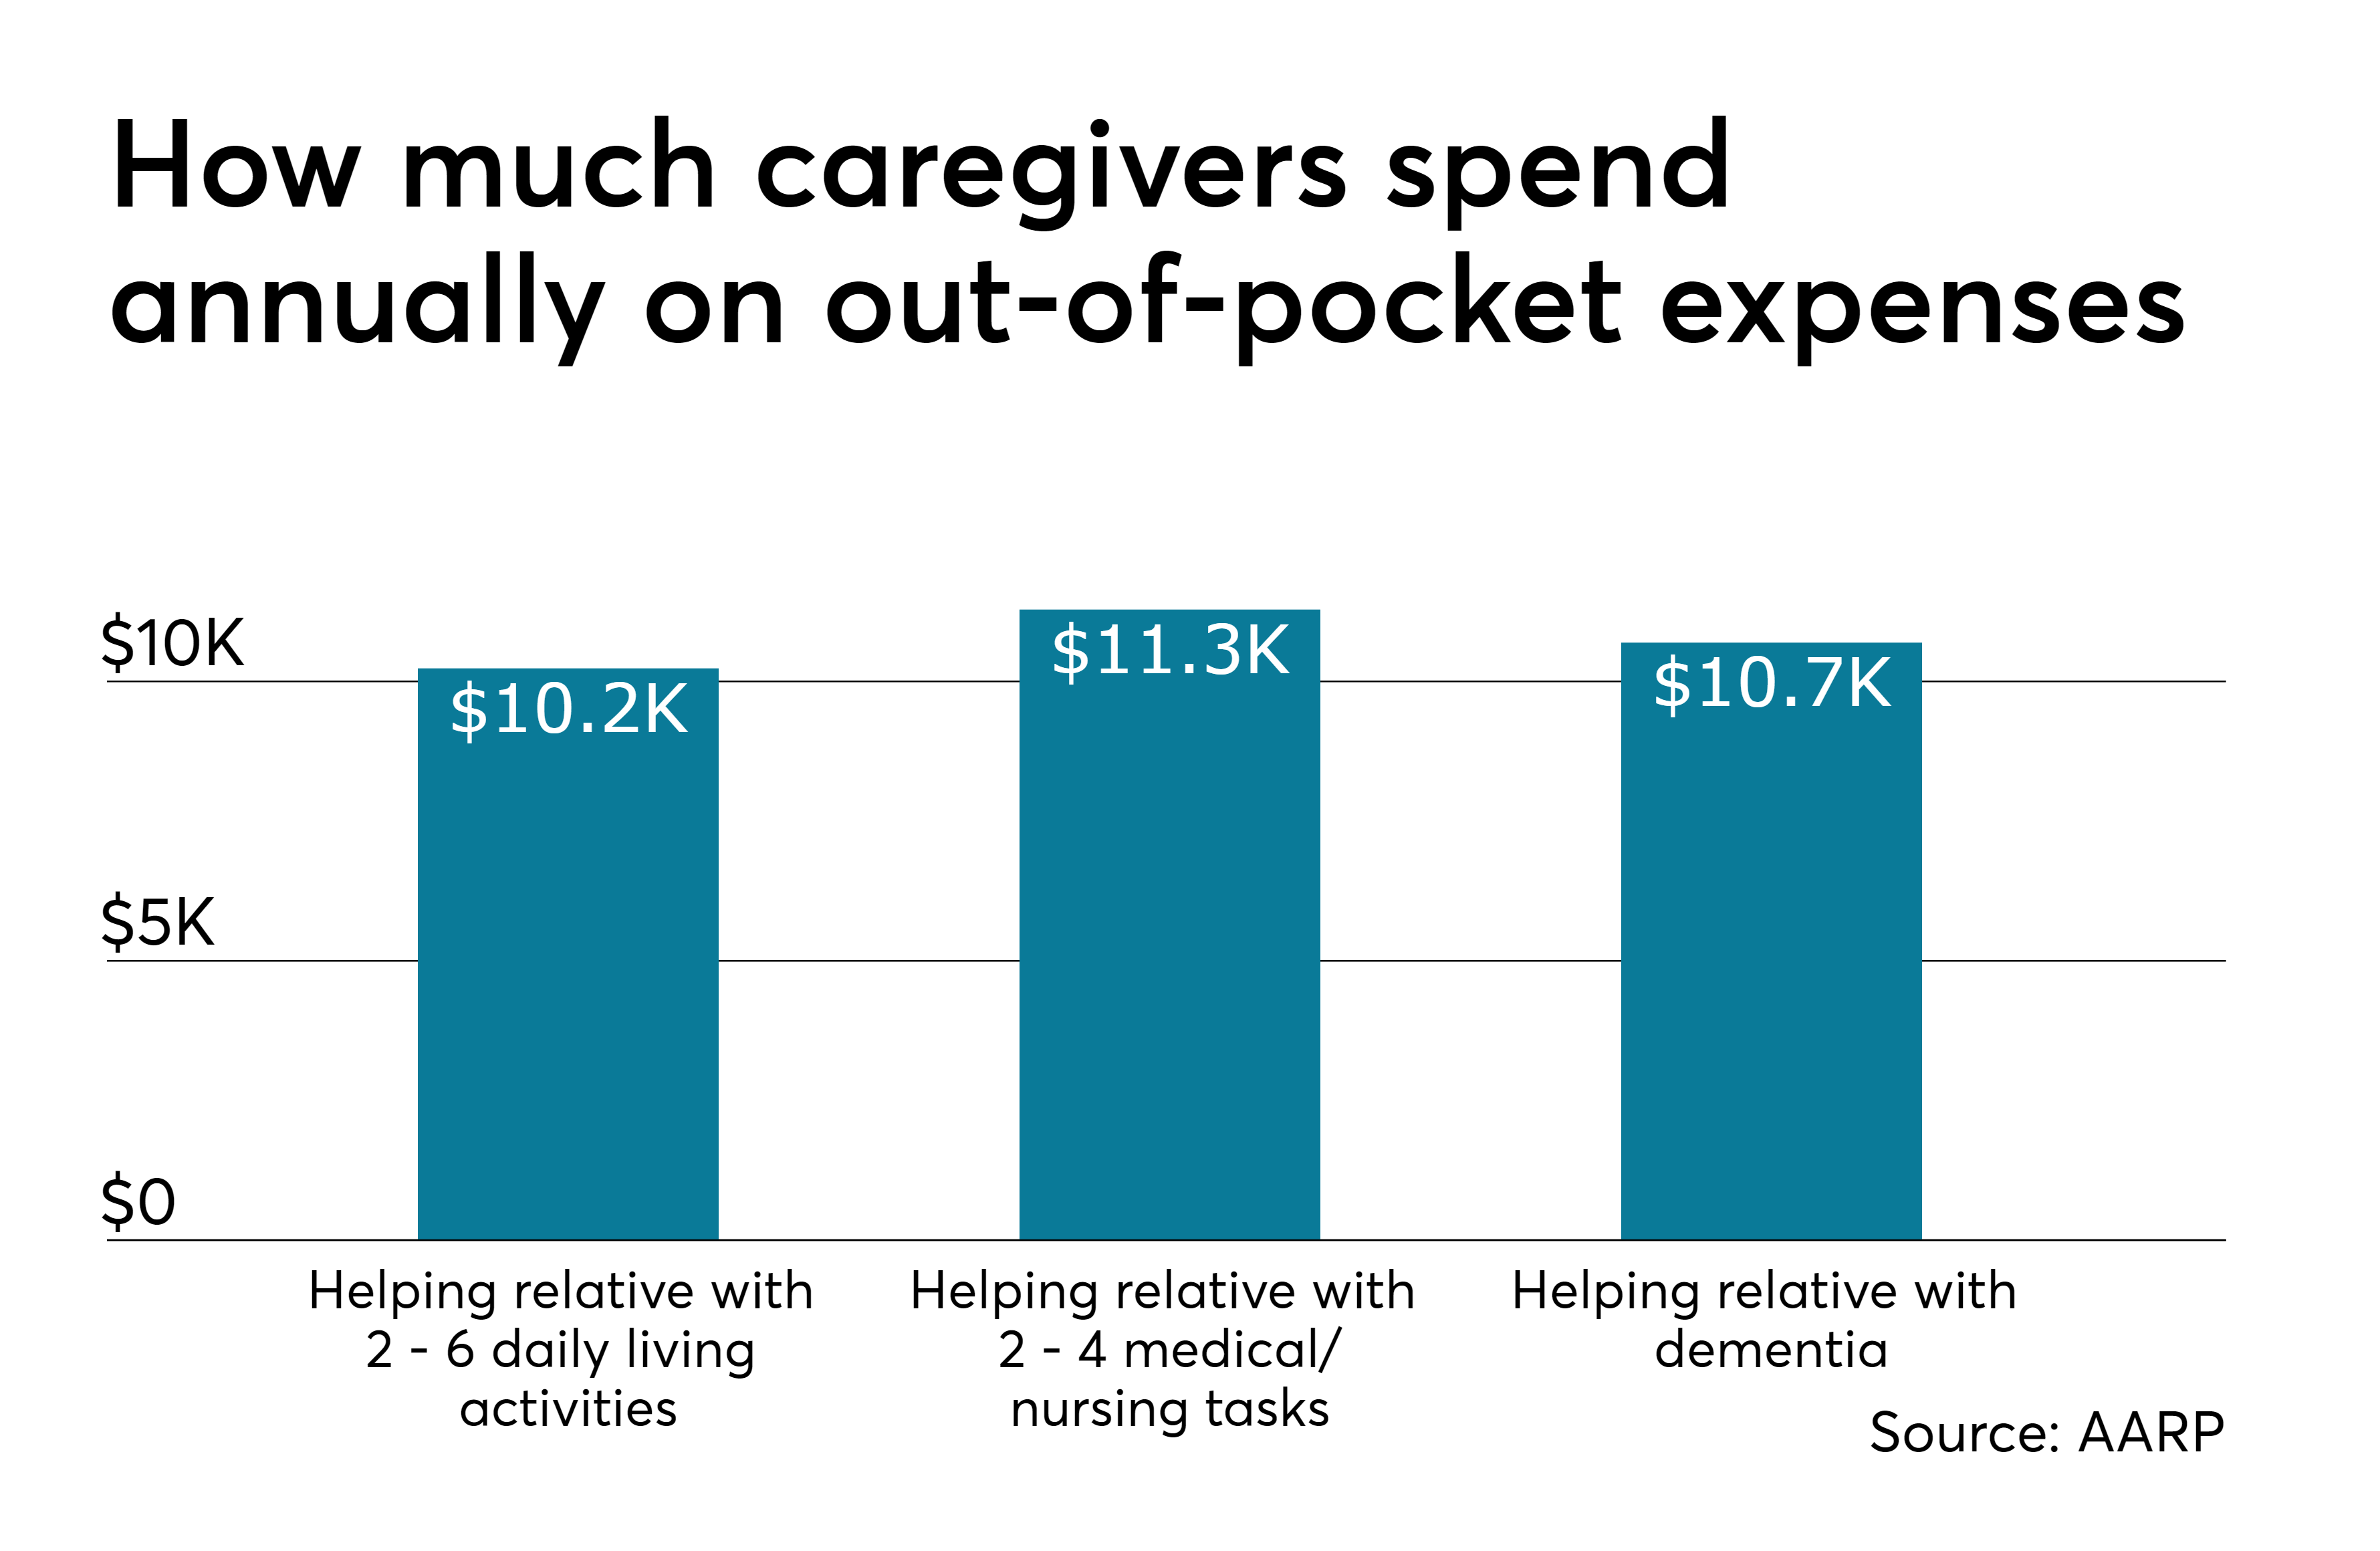 e62ecc0d8b4 caregiving.Costs.5.21.19.png